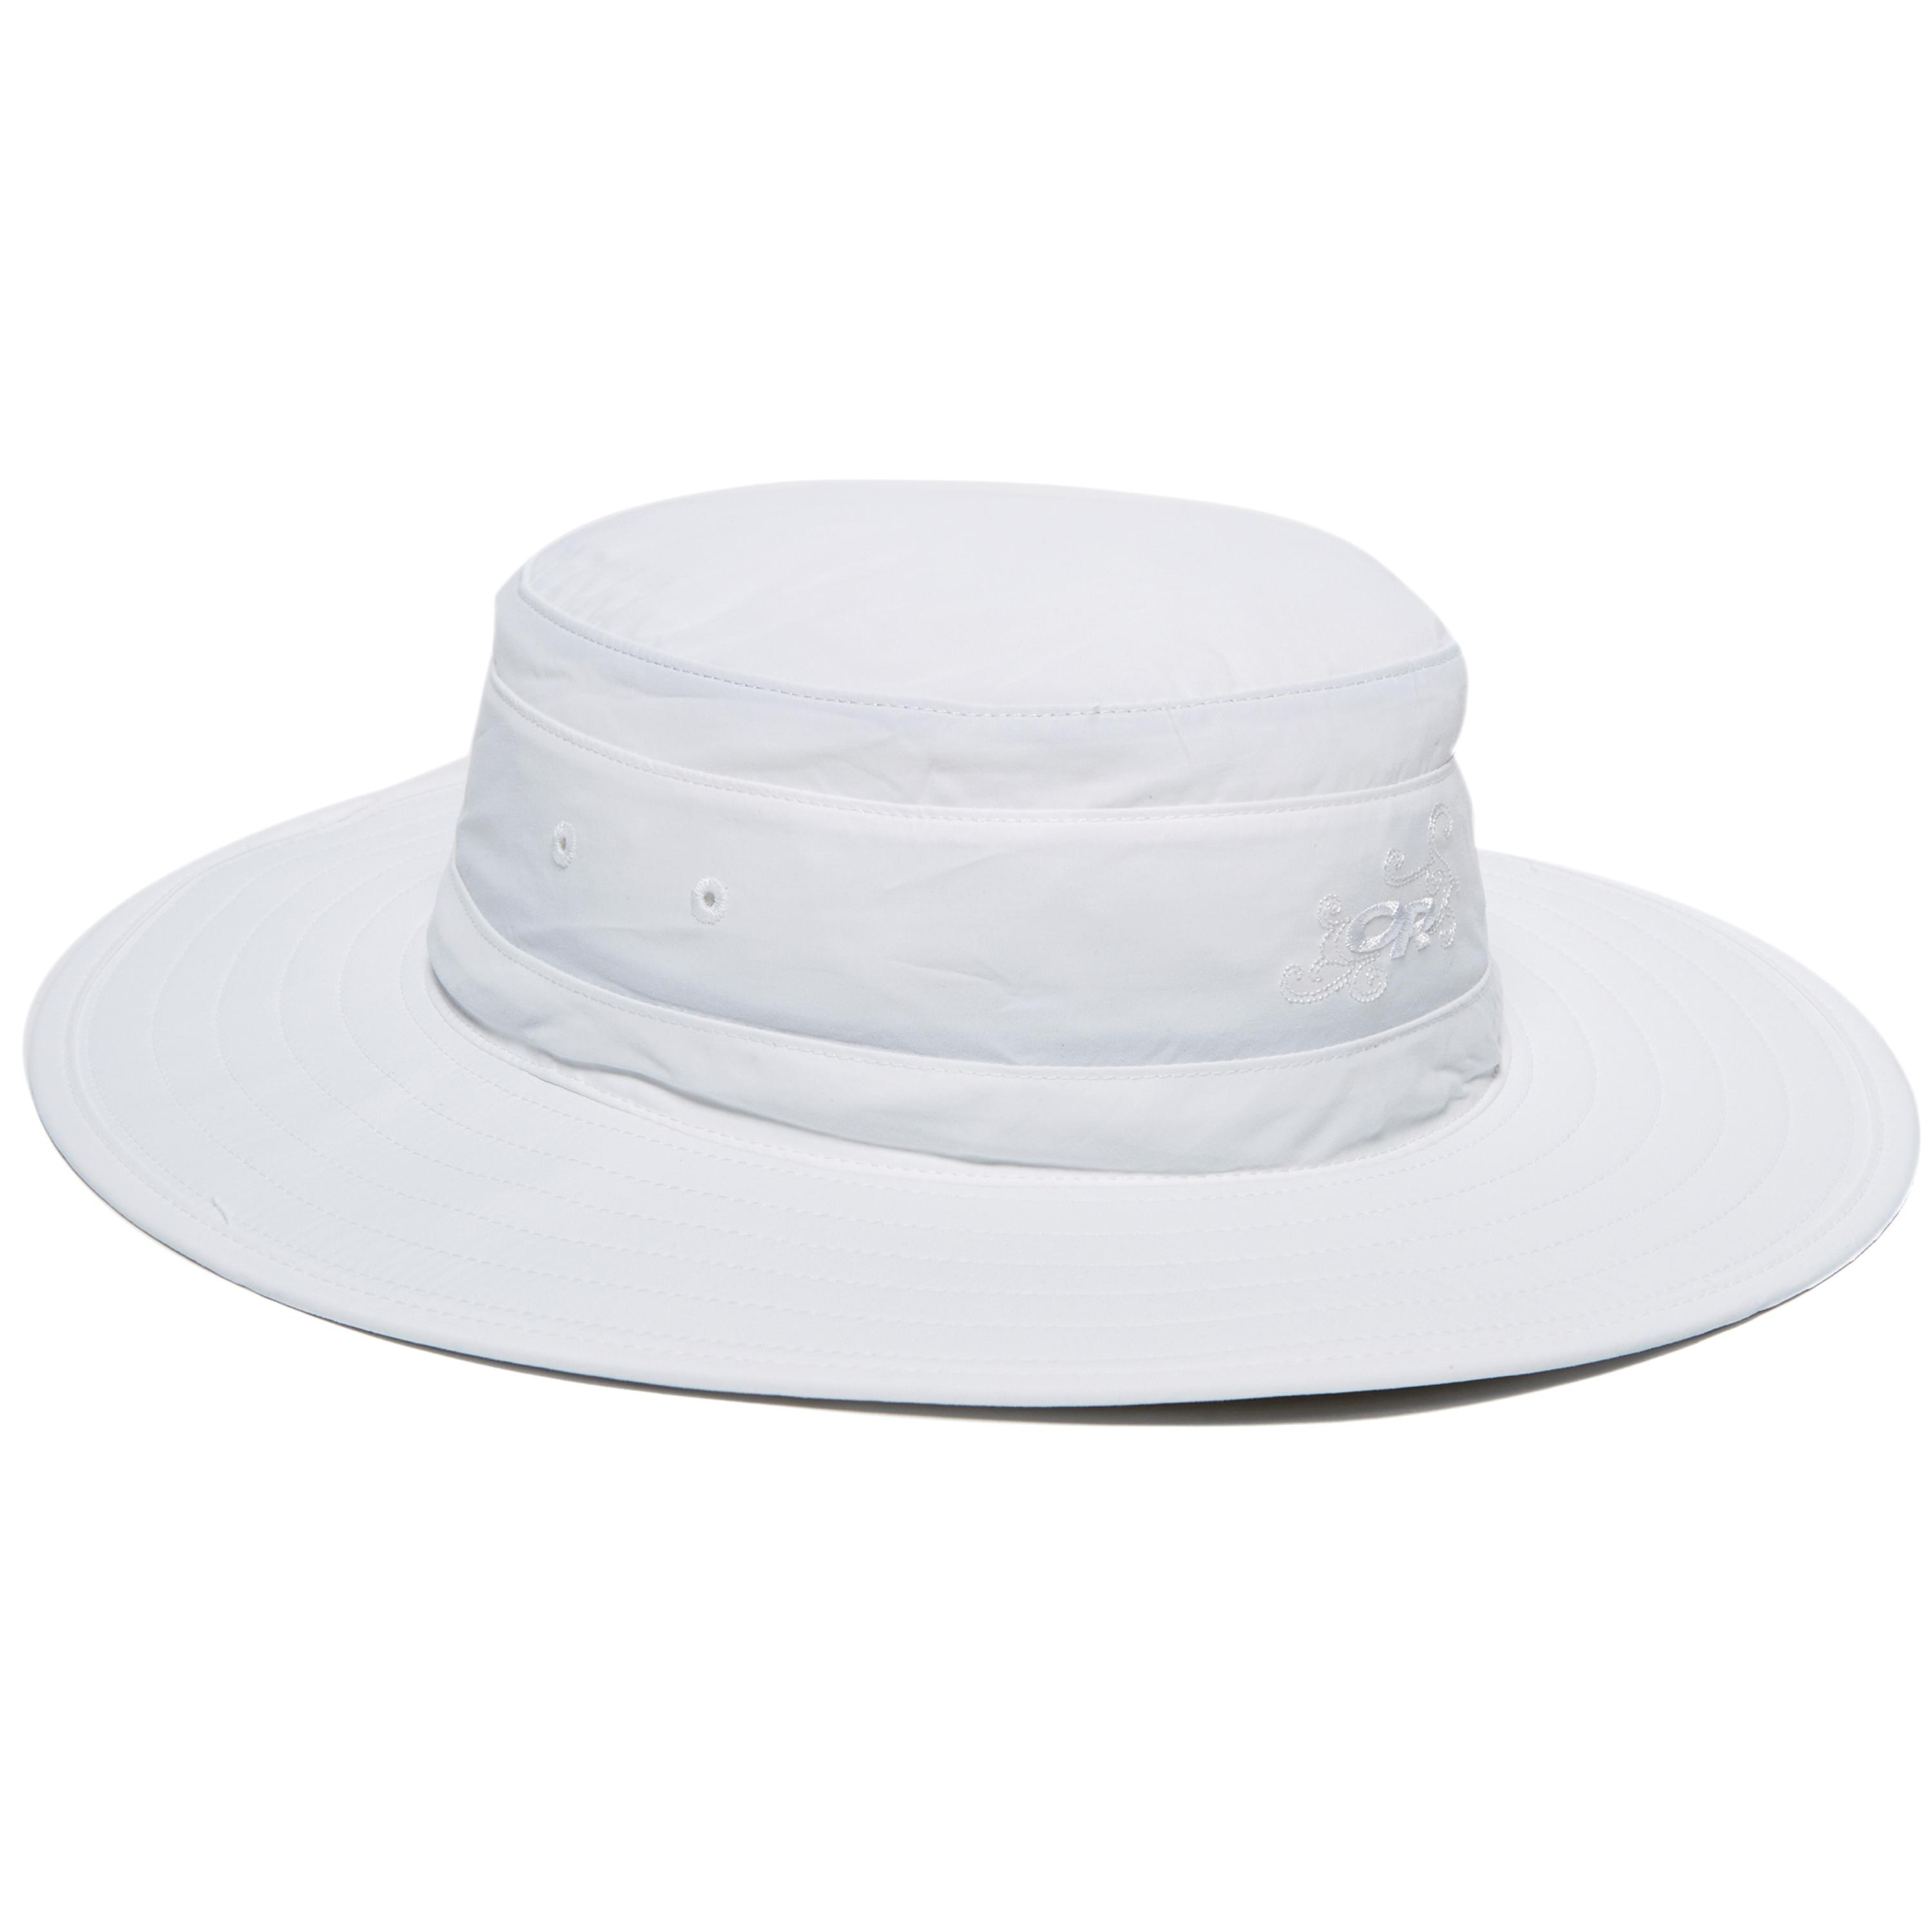 Details about New Outdoor Research Women s Solar Roller Sun Hat a327c23f4d46